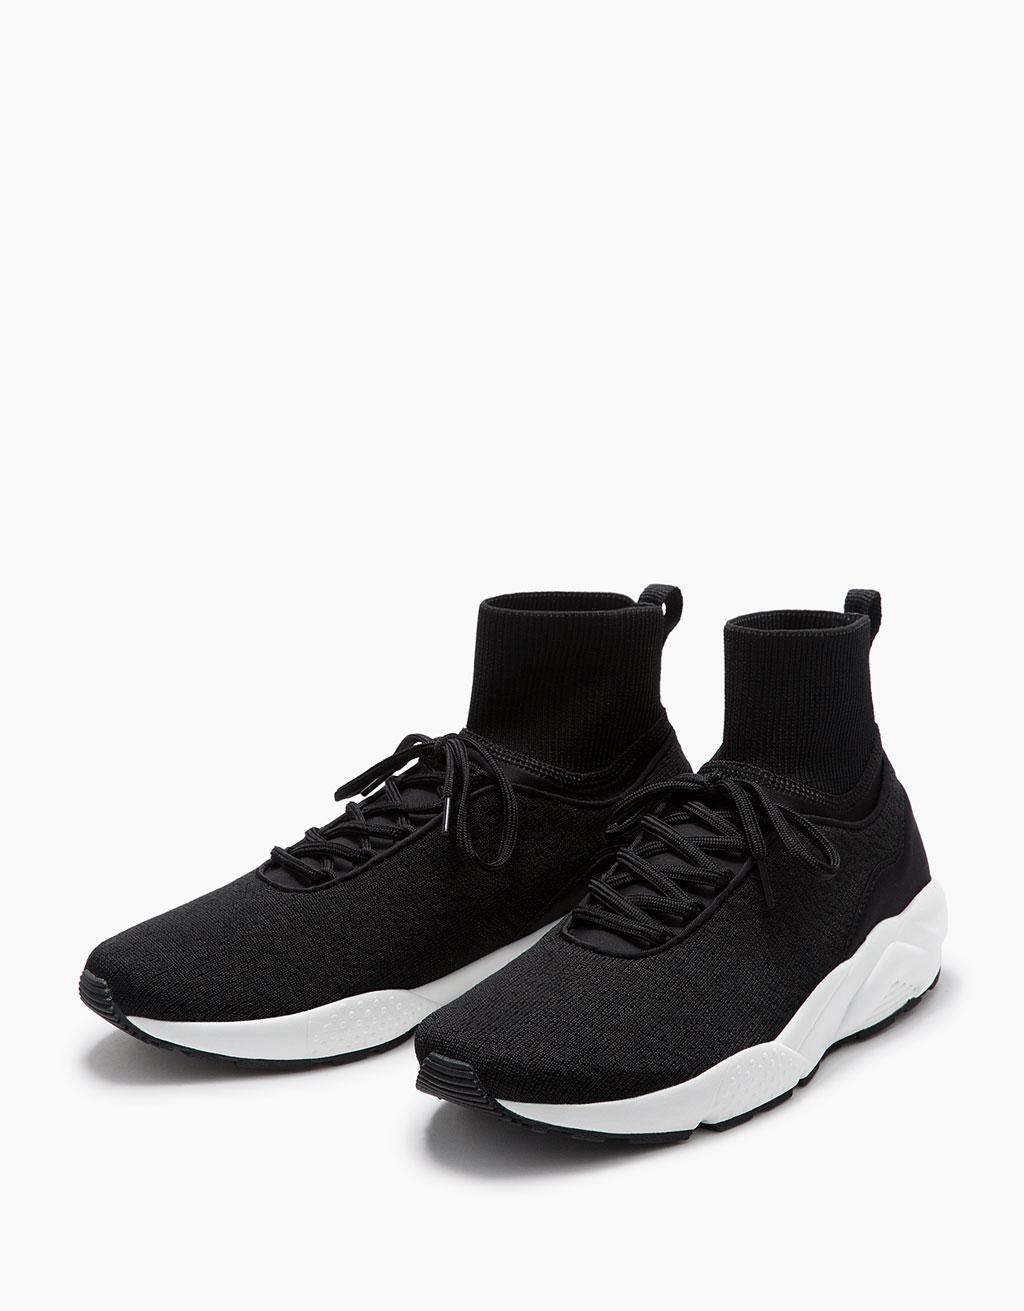 Men's high-top sock sneakers with technical sole